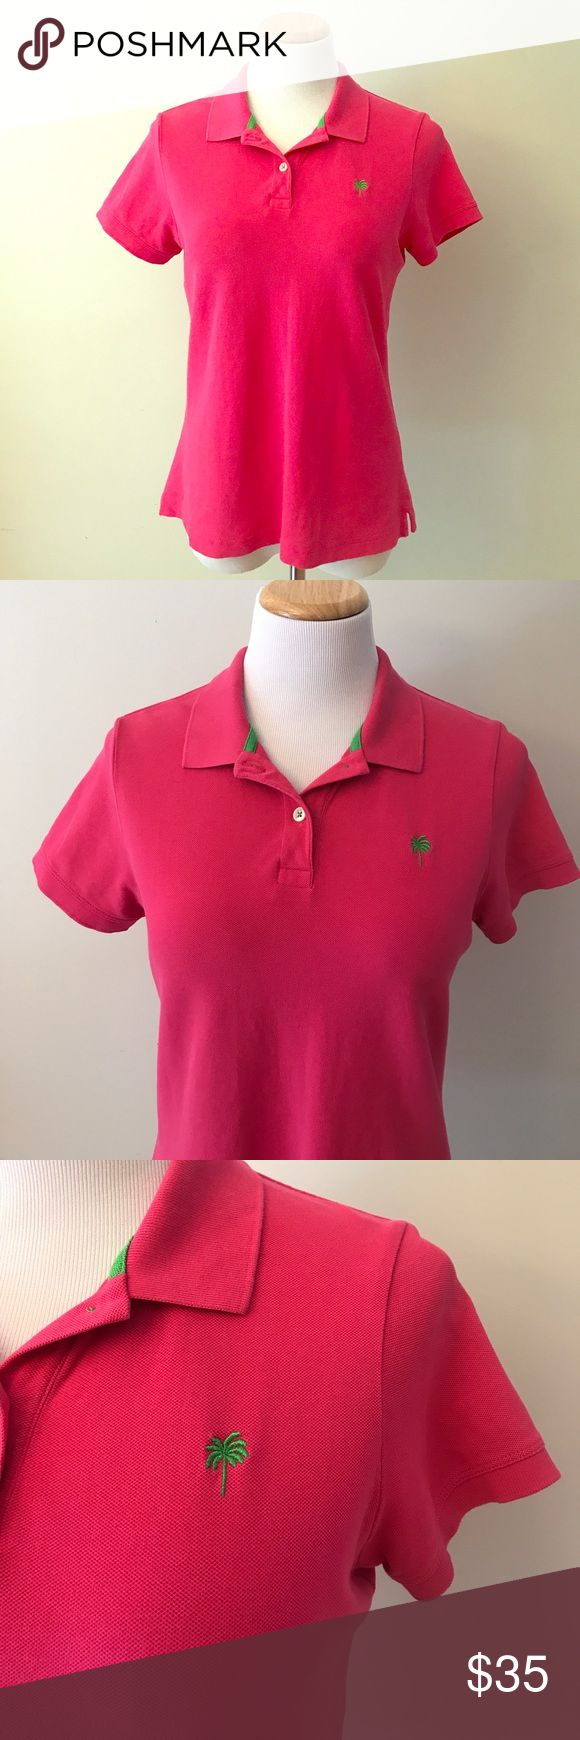 """Lilly Pulitzer Pink Polo Shirt Size L This Lilly Pulitzer pink polo shirt size L is in excellent pre-owned condition. No stains, rips or odors. Armpit to armpit laying flat is 19"""" and it is approx. 24"""" long. A classical Lilly Pulitzer piece! Lilly Pulitzer Tops Tees - Short Sleeve"""